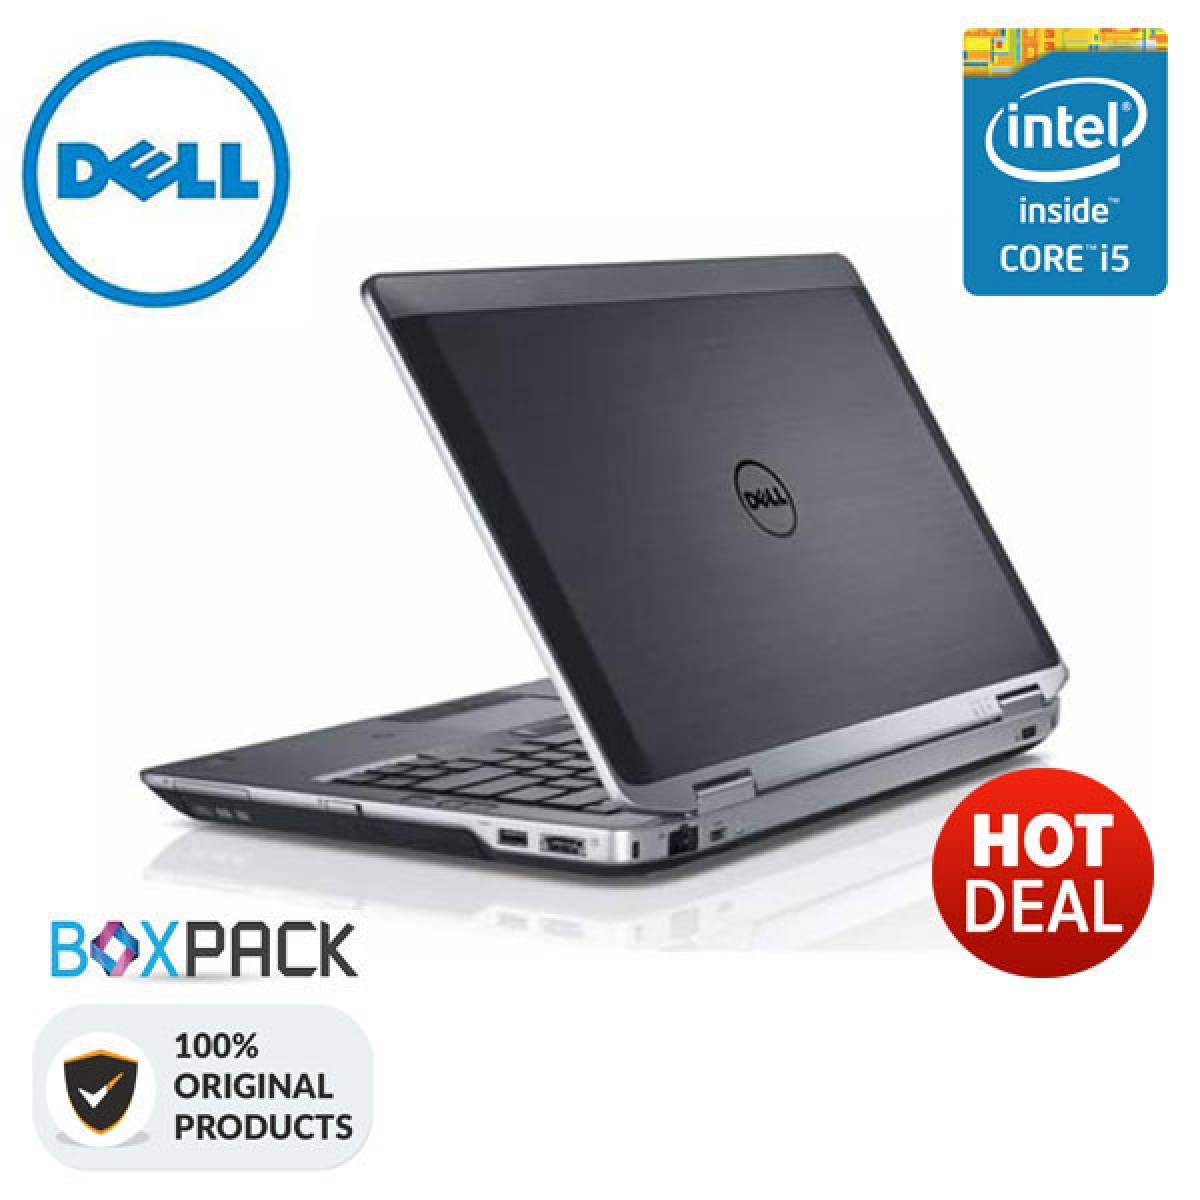 DELL LATITUDE E6430 (CORE I5 V-PRO) SUPERDUTY PERFORMANCE LAPTOP